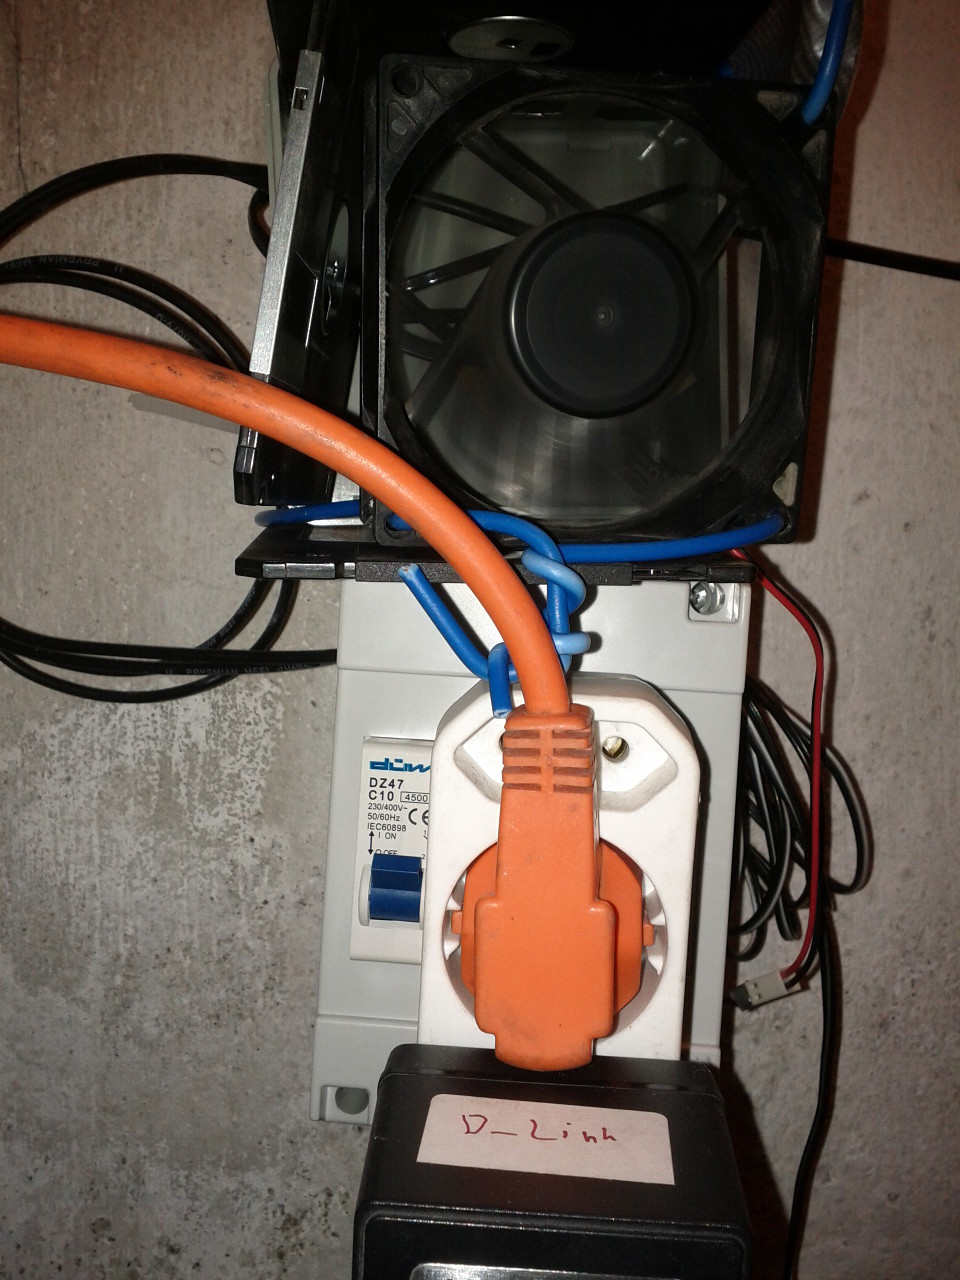 controller with orange extension cord plugged in